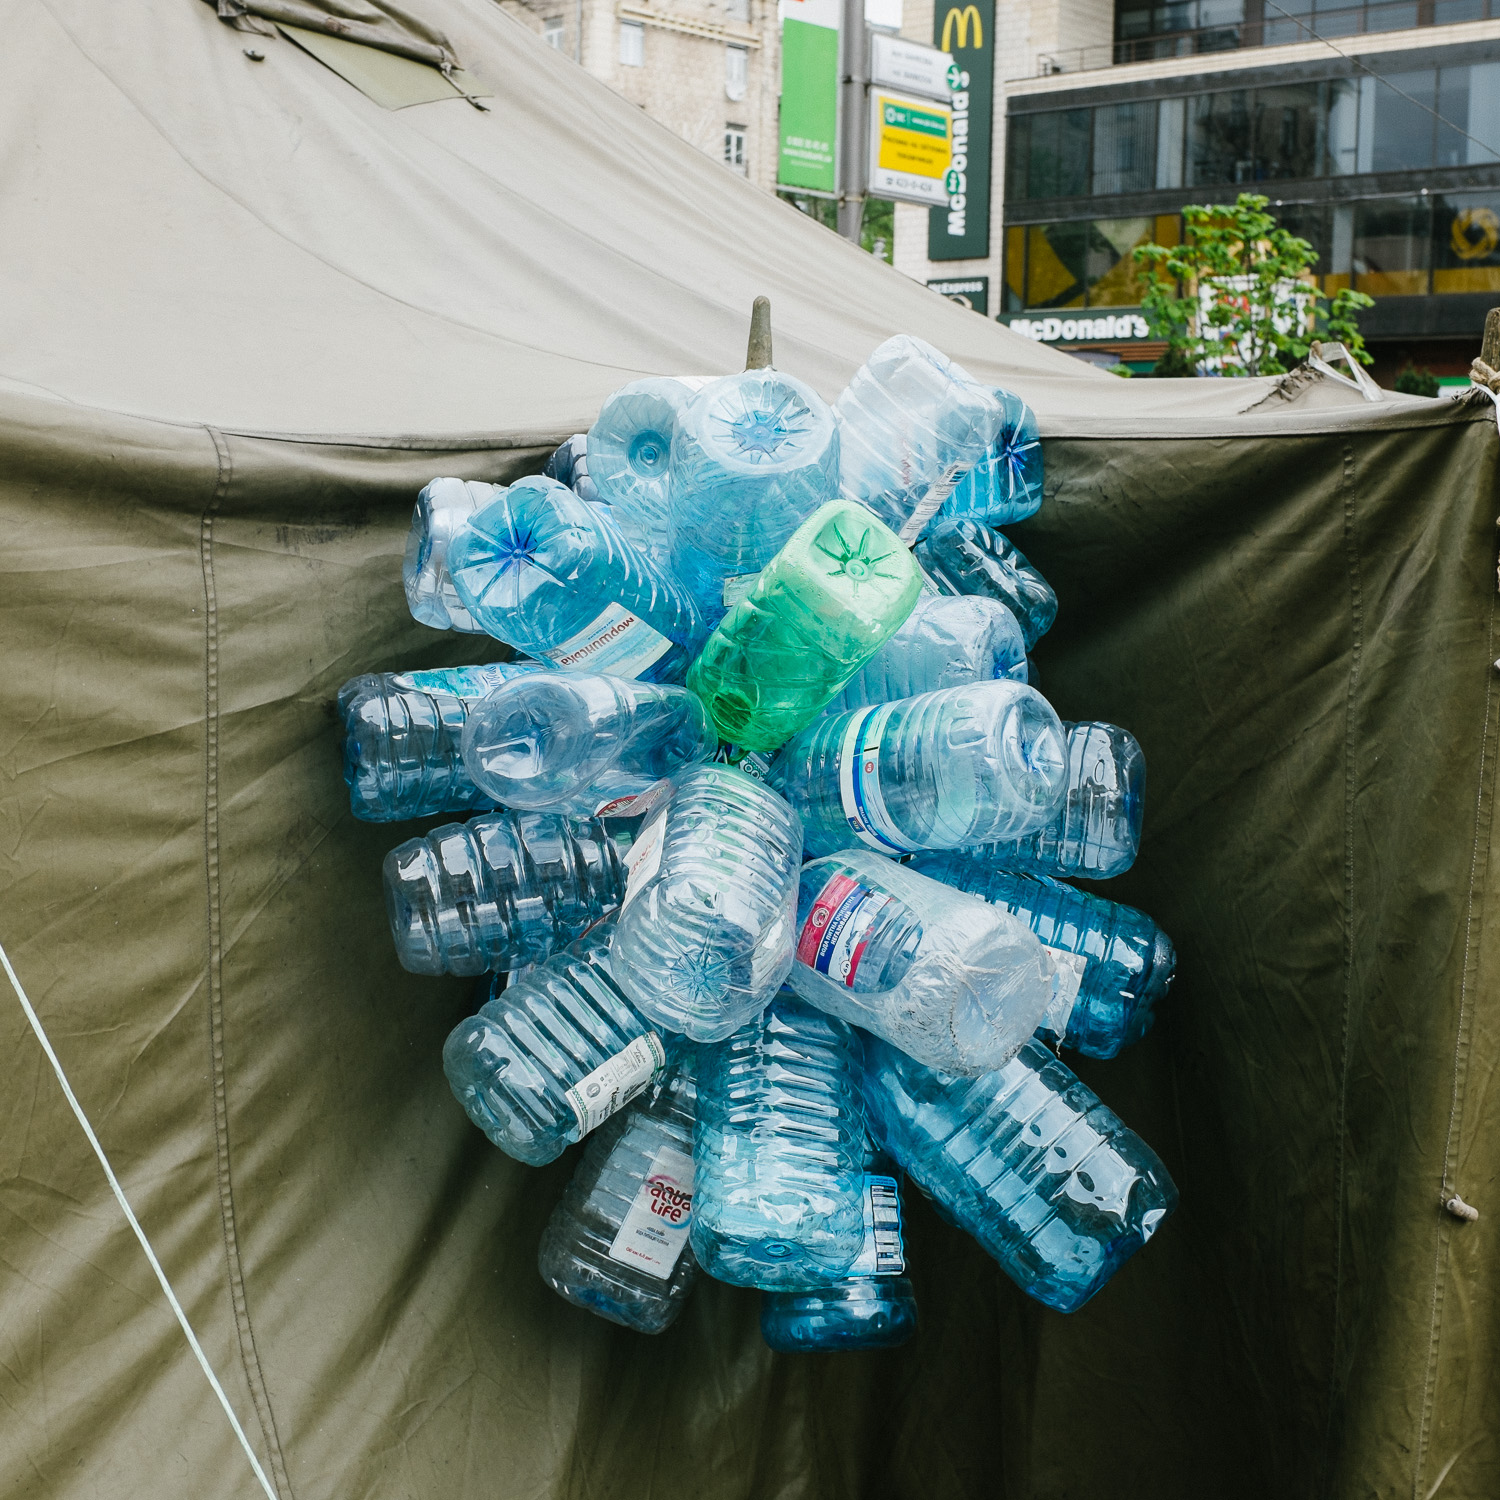 Empty water bottles outside a tent pitched on Khreshchatyk street, off Kiev's Independence Square, April 2014.